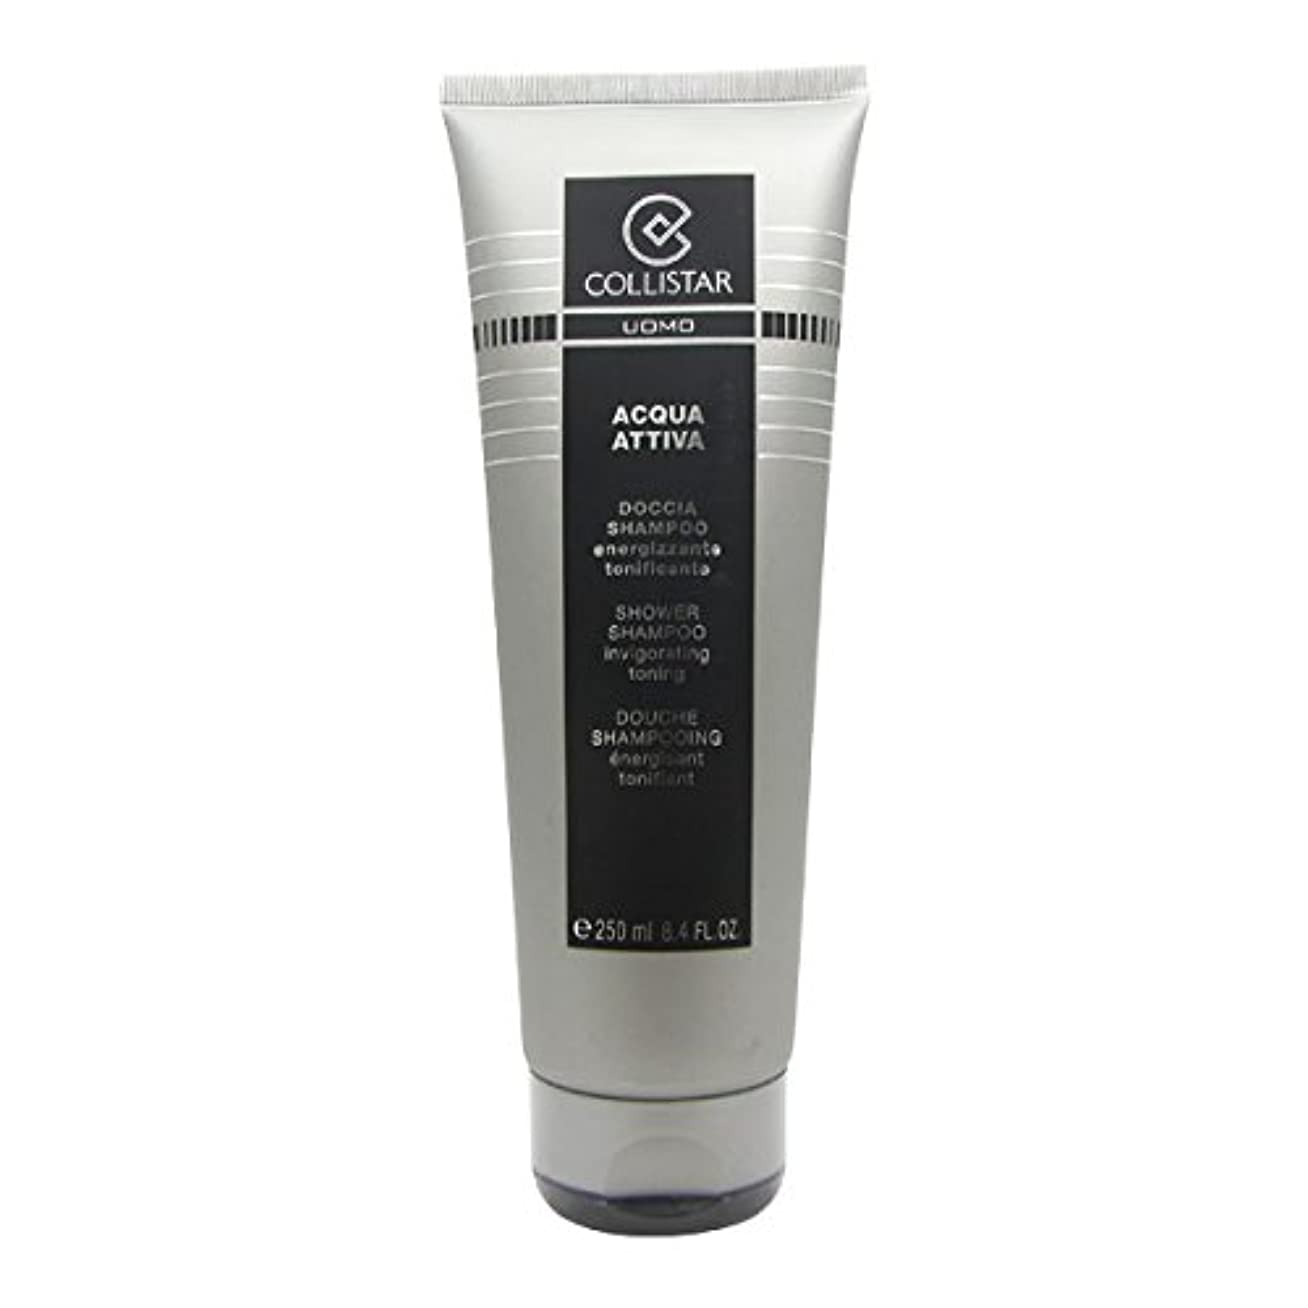 小説そこから流星Collistar Men Acqua Attiva Shower Shampoo 250ml [並行輸入品]